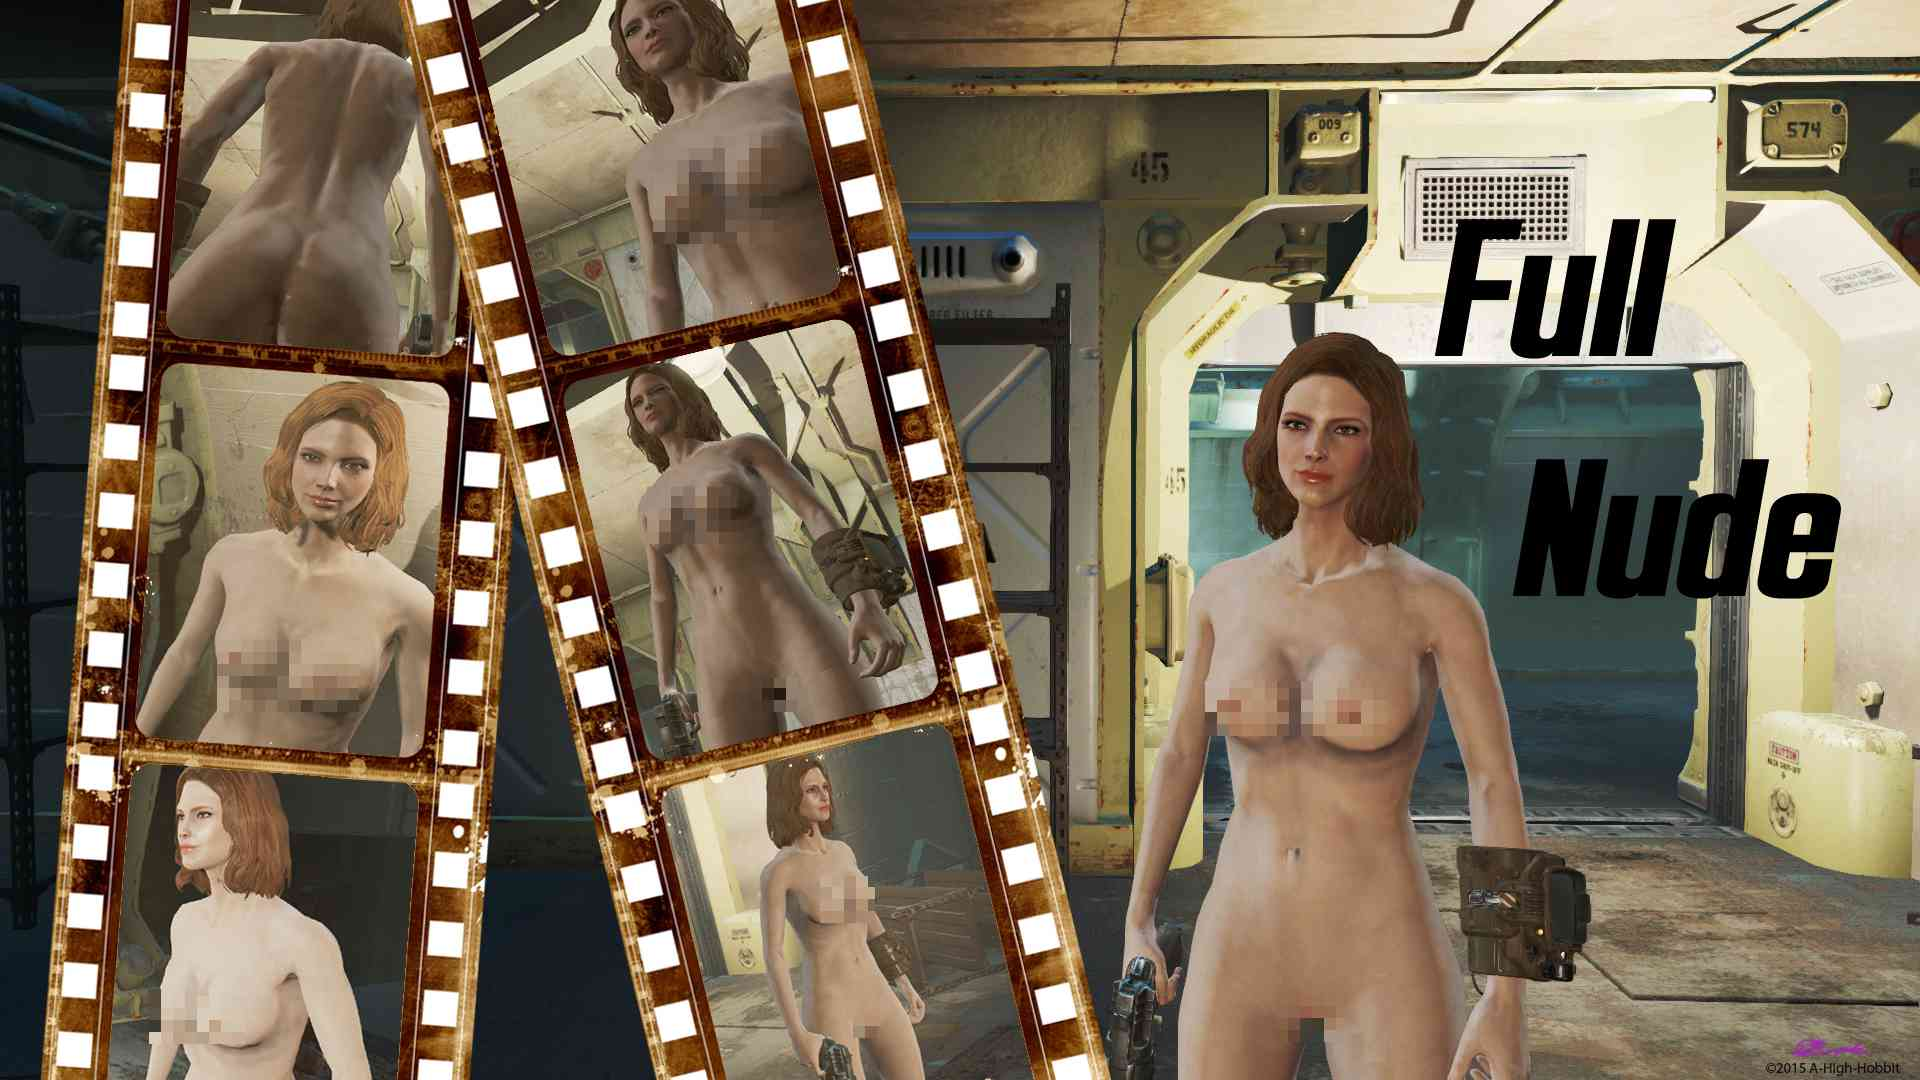 Fallout 4 nude patch succubus cartoon images